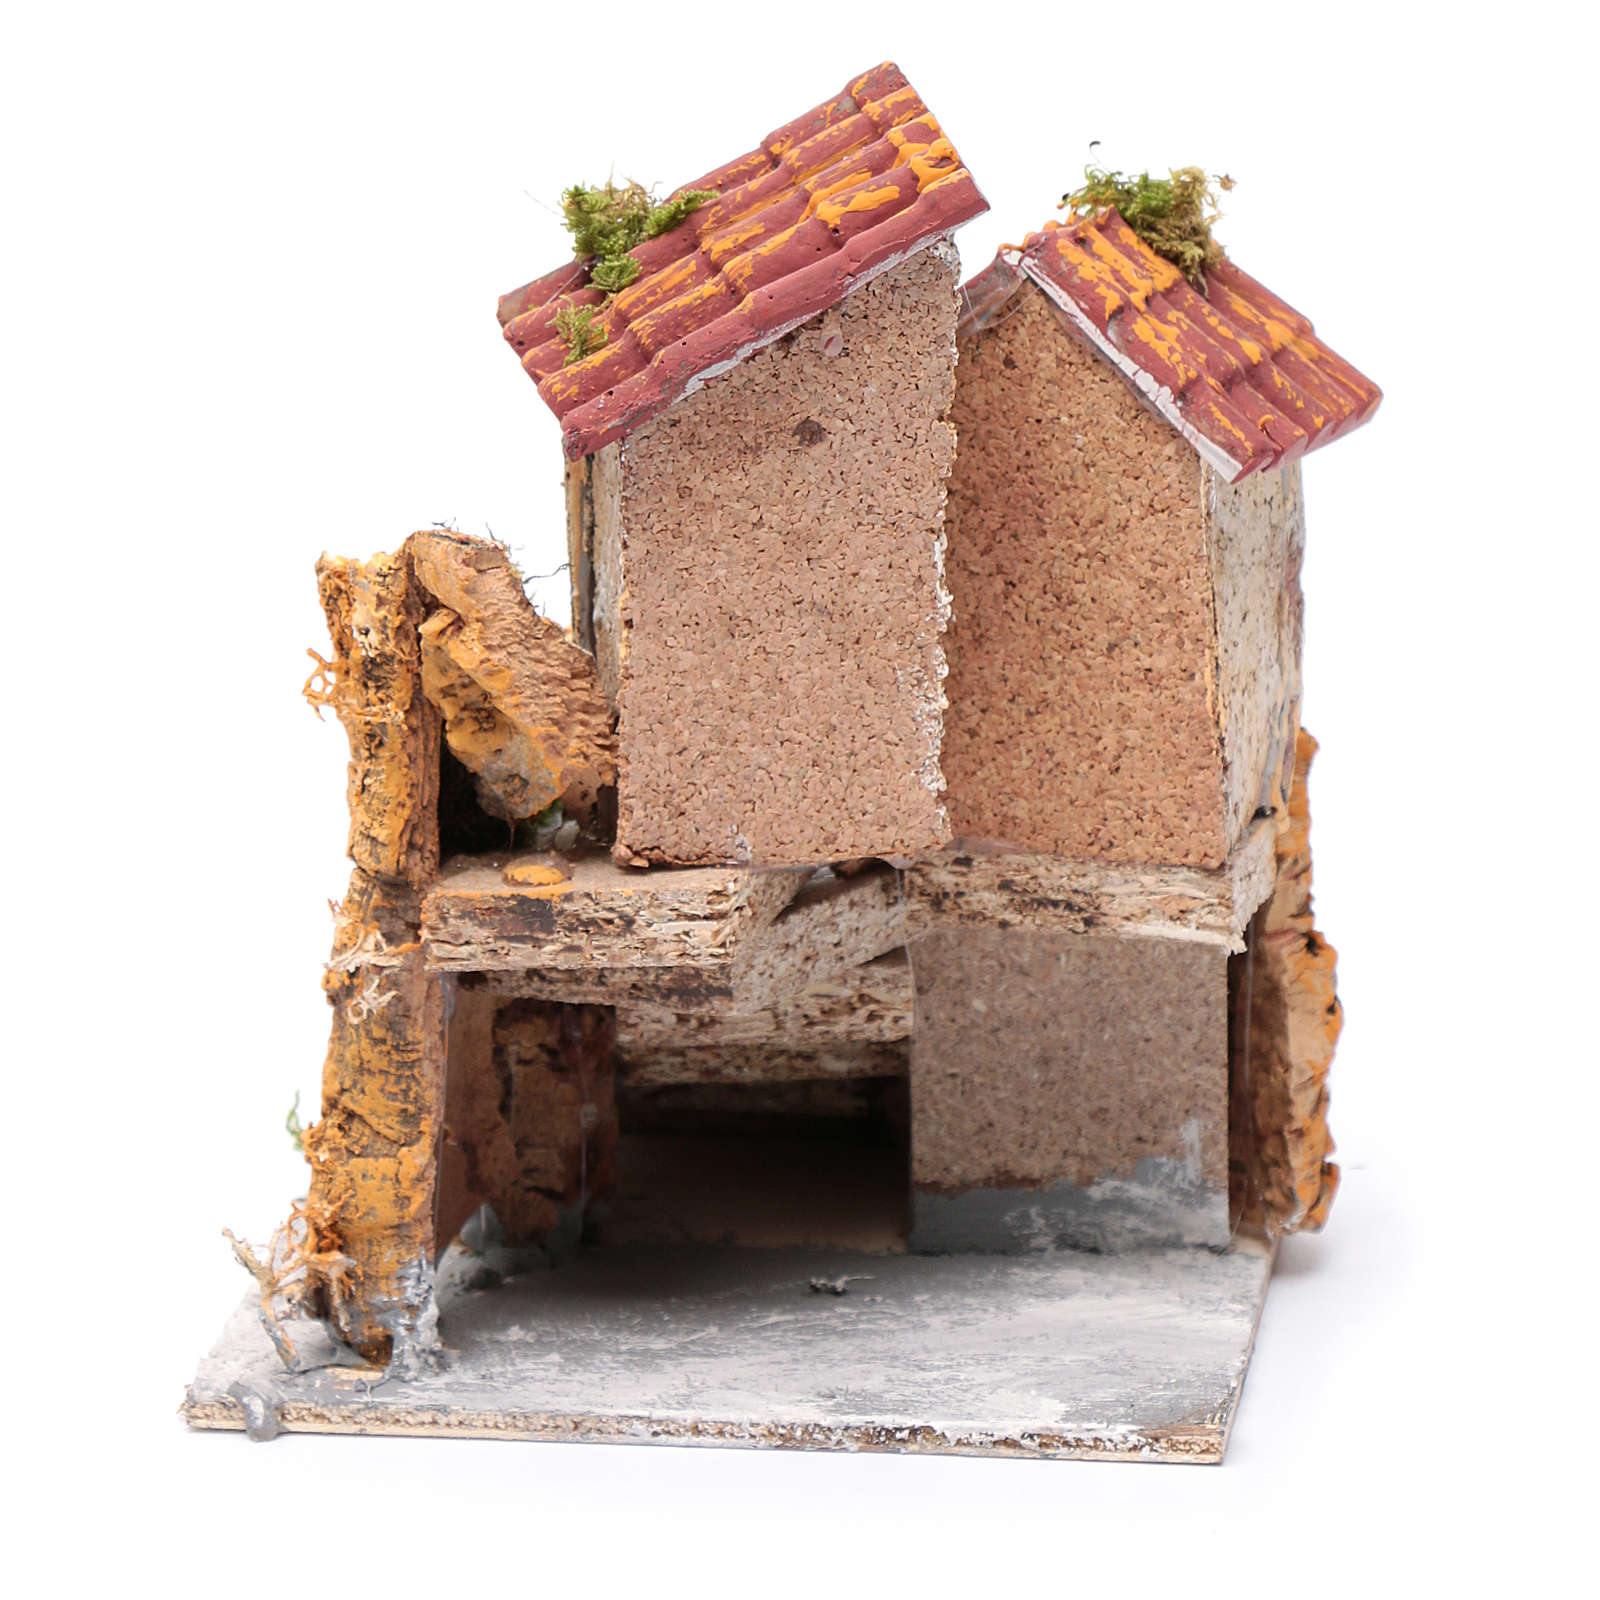 House with stairs in cork and resin for nativity scene, 16x15x18cm 4